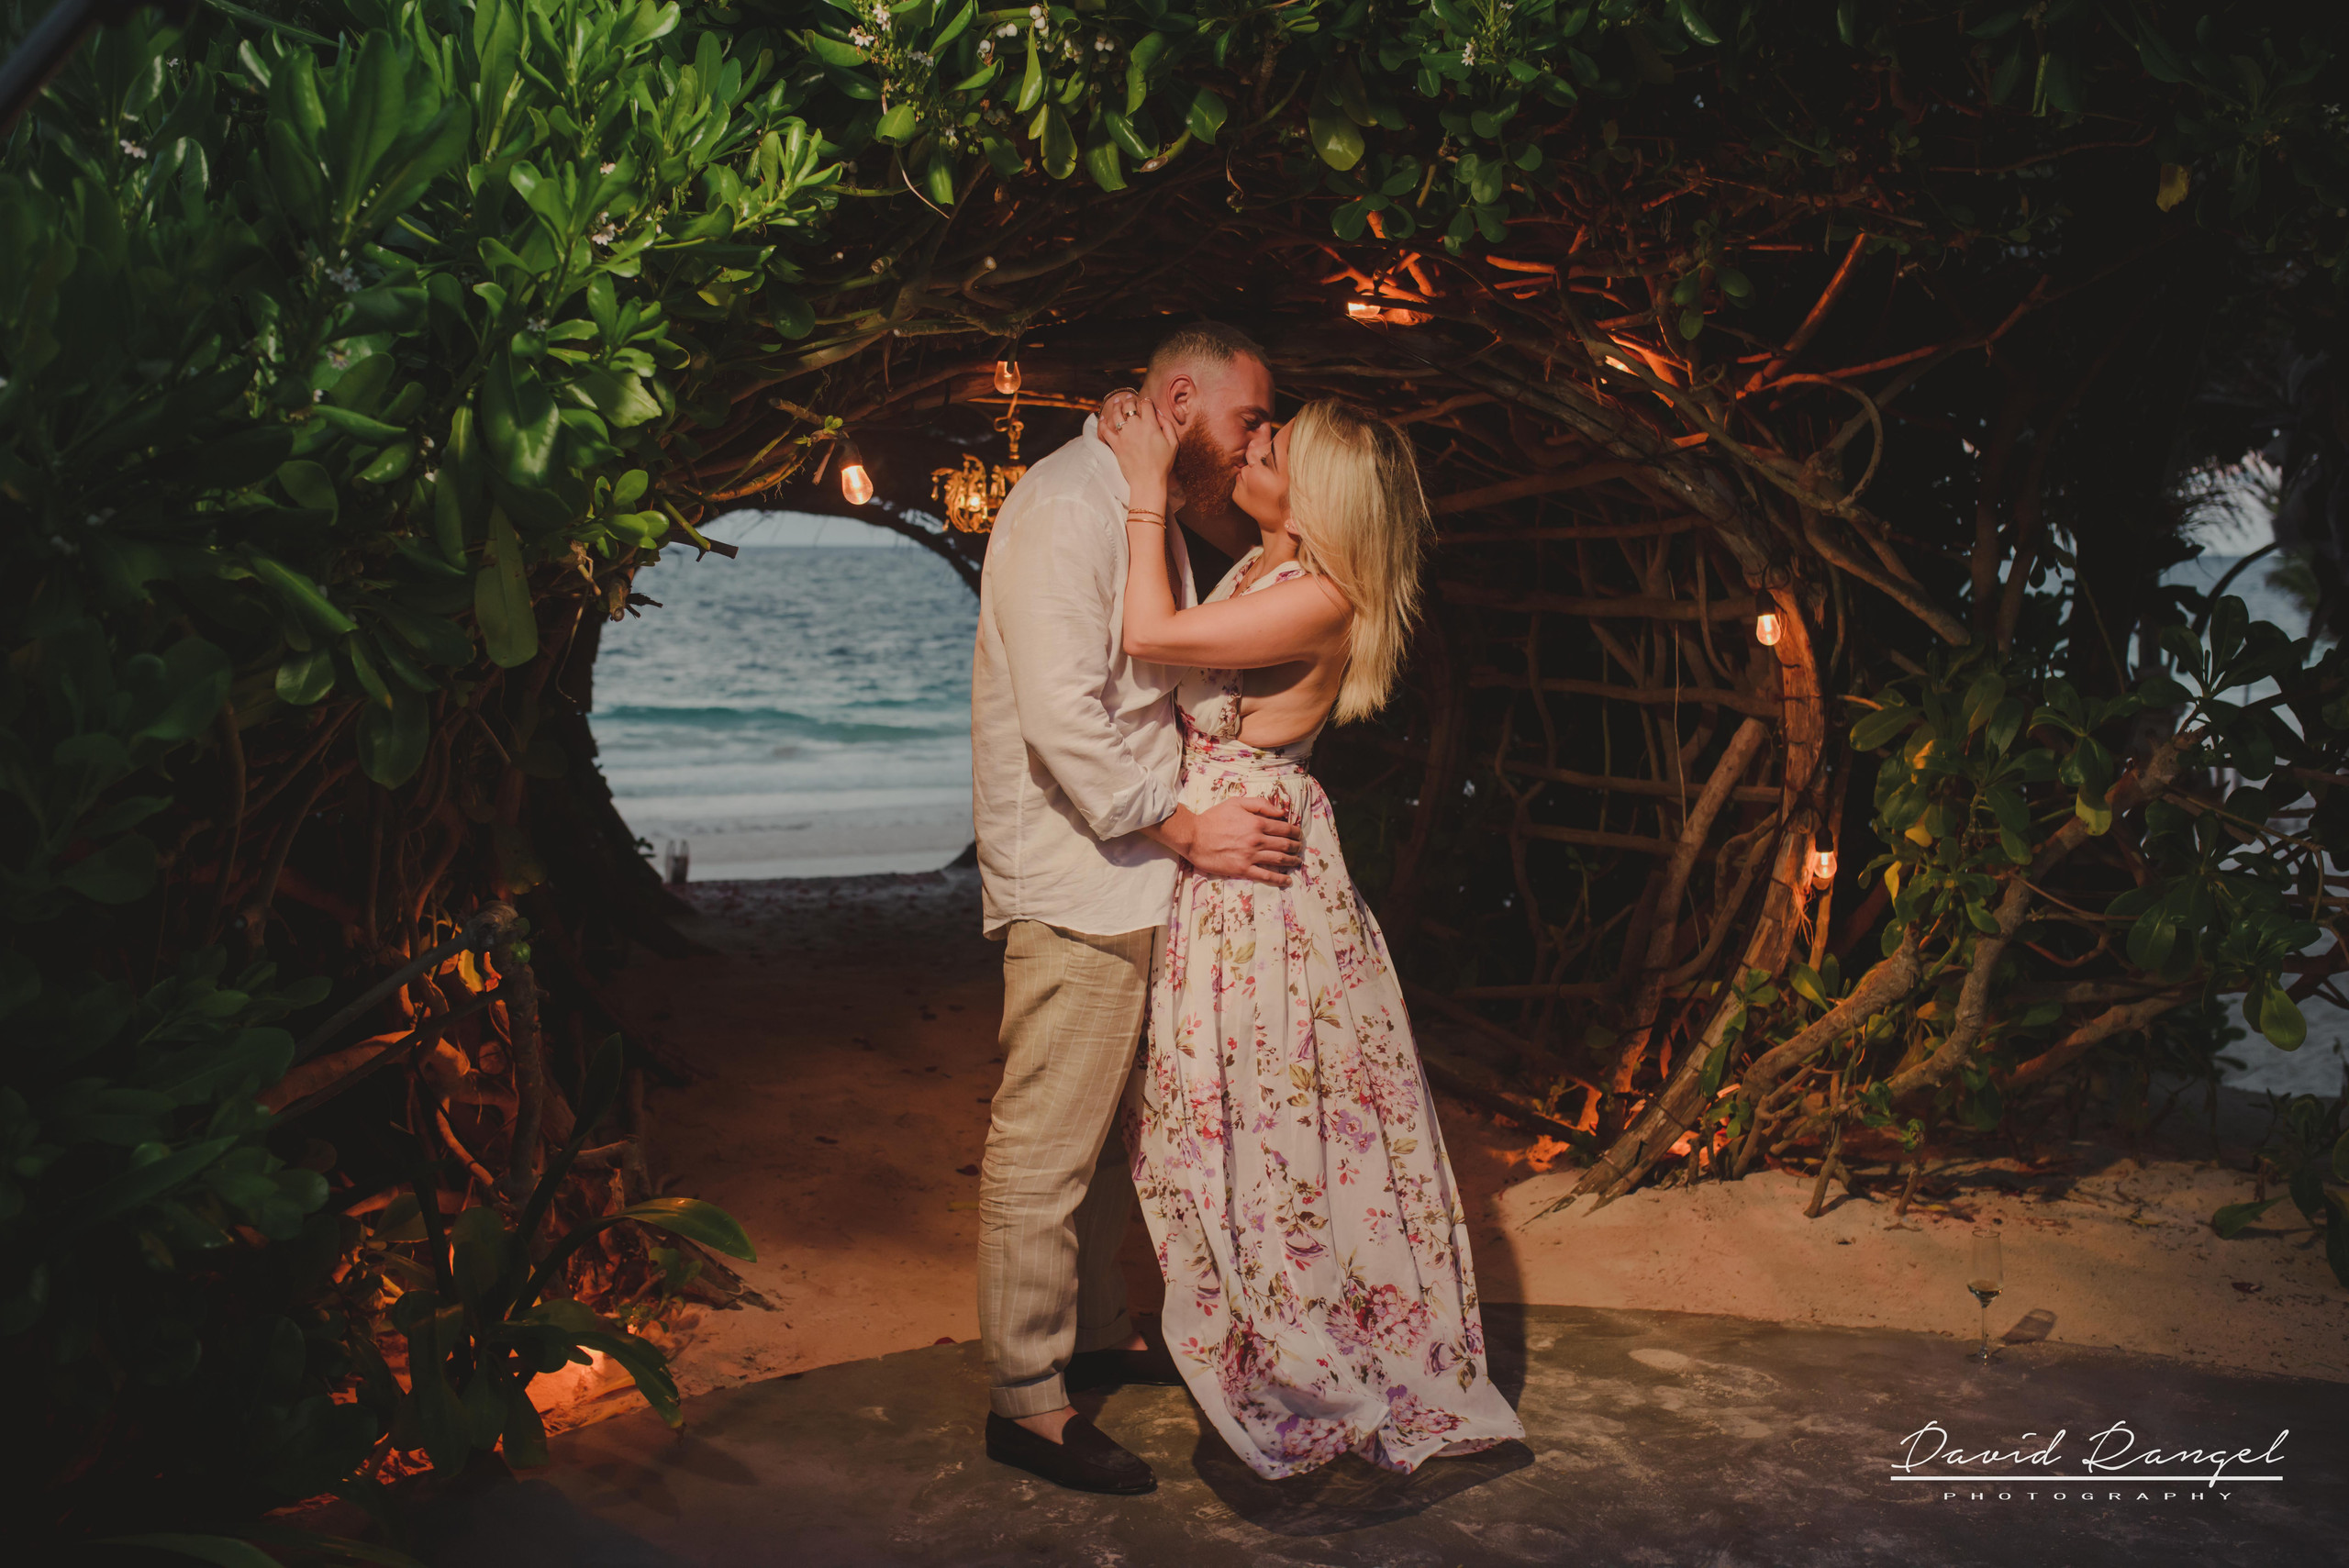 engagement+session+photo+shot+romantic+sorprise+beach+caribe+sand+mexico+tulum+casa+malca+hotel+boutique+girl+man+union+she+say+yes+ring+propose+tunnel+garden